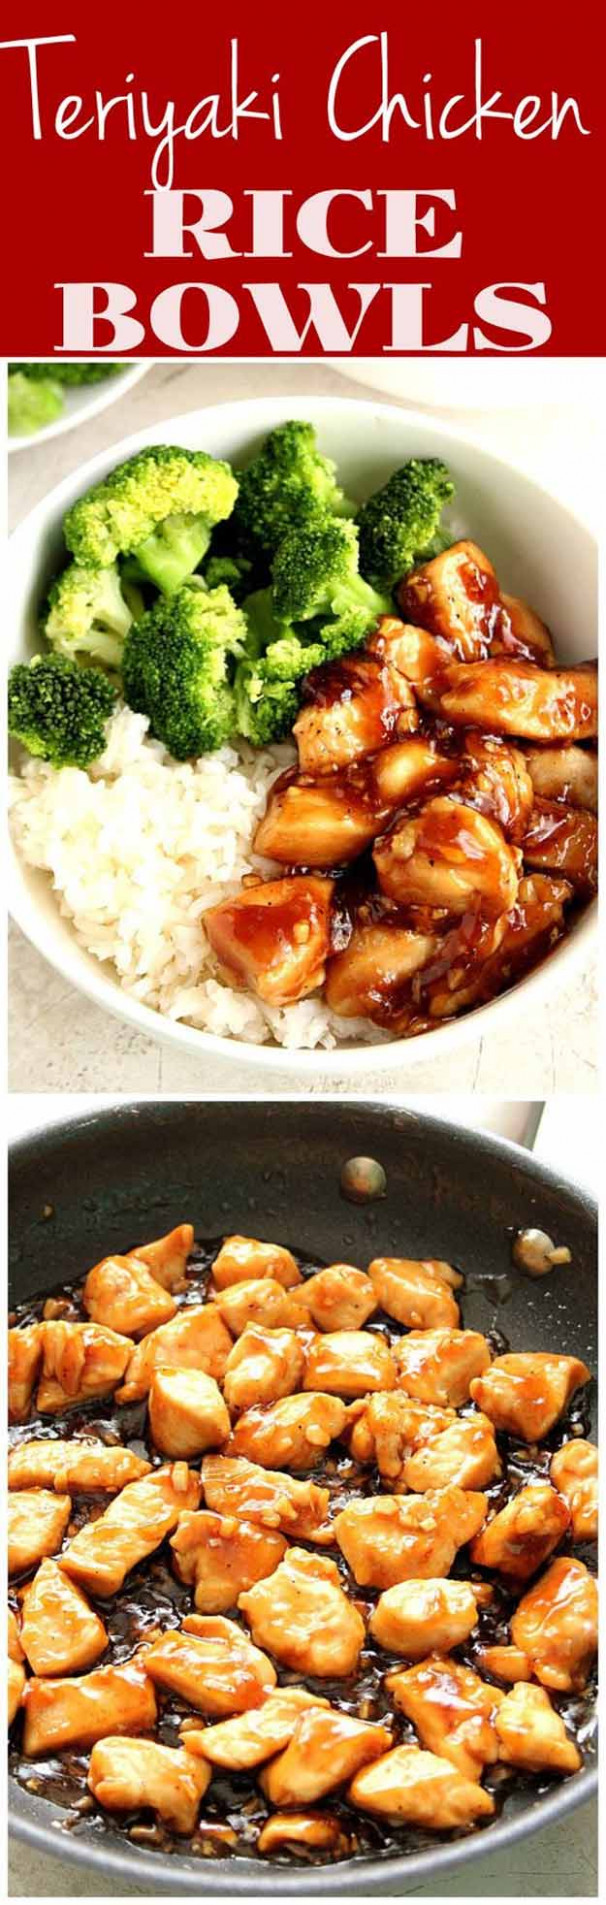 38 More Healthy Dinner Recipes - The Goddess - healthy recipes quick dinner